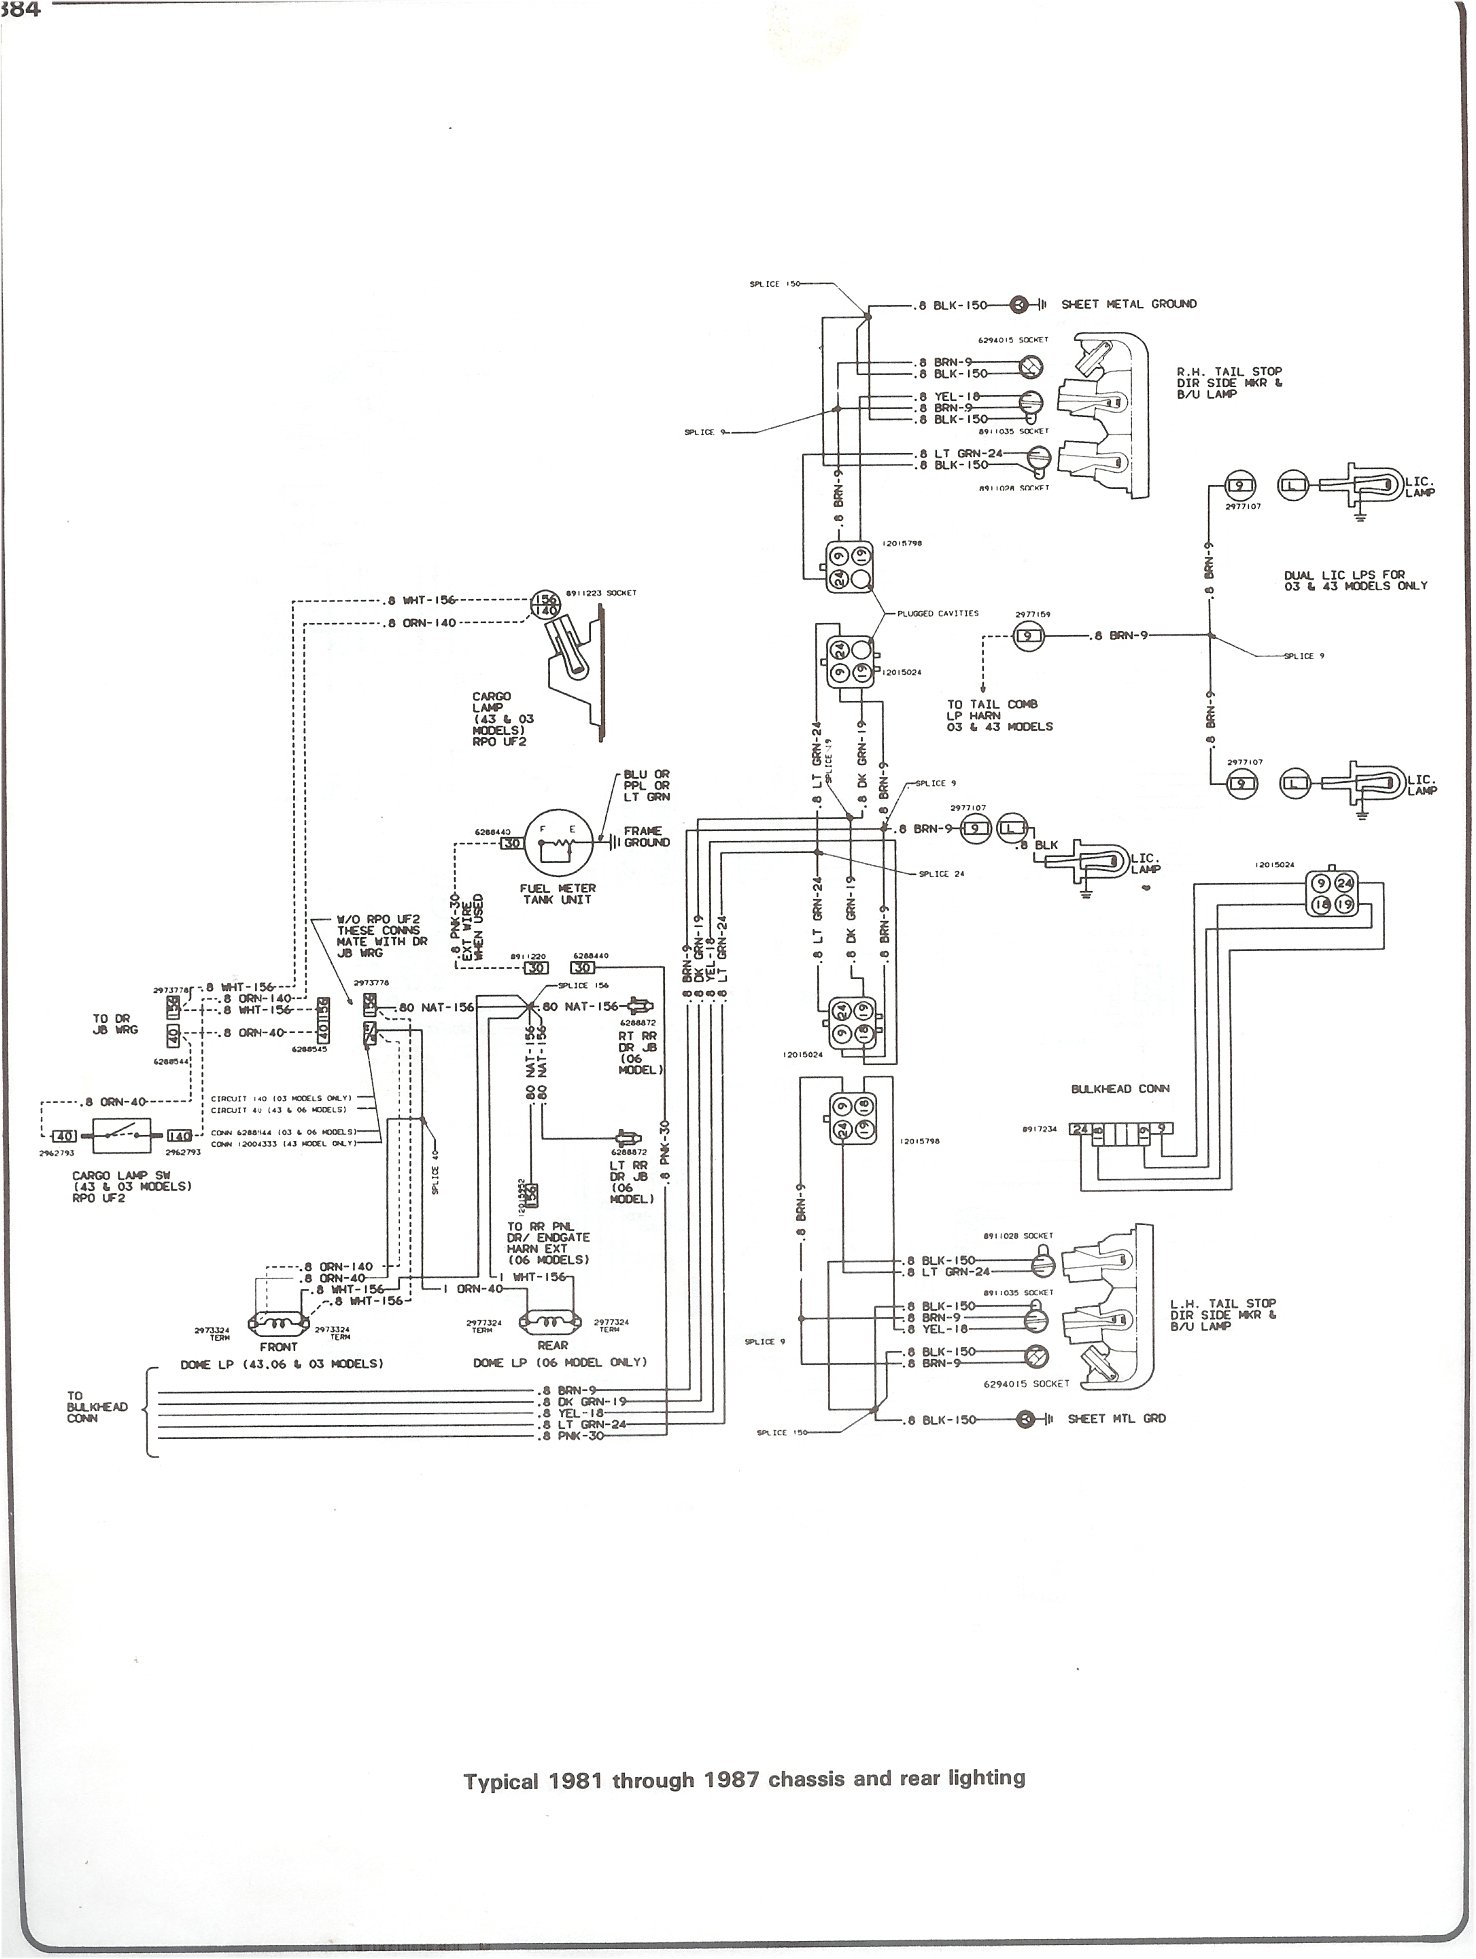 complete 73 87 wiring diagrams rh forum 73 87chevytrucks com 1969 chevy c20 wiring diagram 1968 chevy c20 wiring diagram